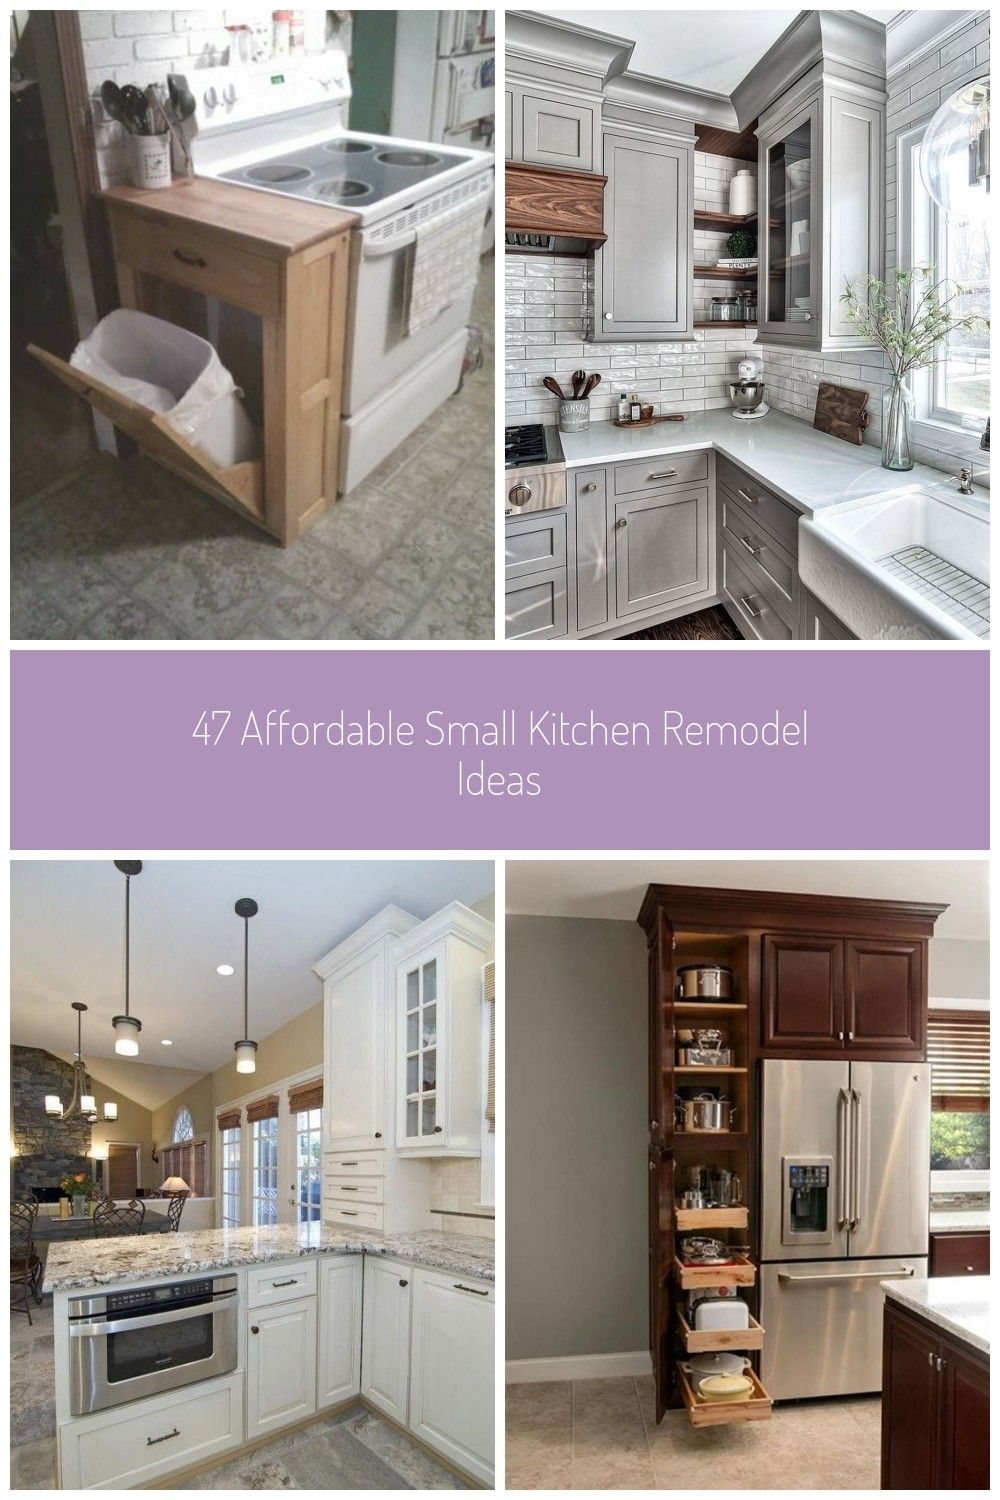 47 Affordable Small Kitchen Remodel Ideas In 2020 Kitchen Remodel Small Kitchen Kitchen Remodel Small